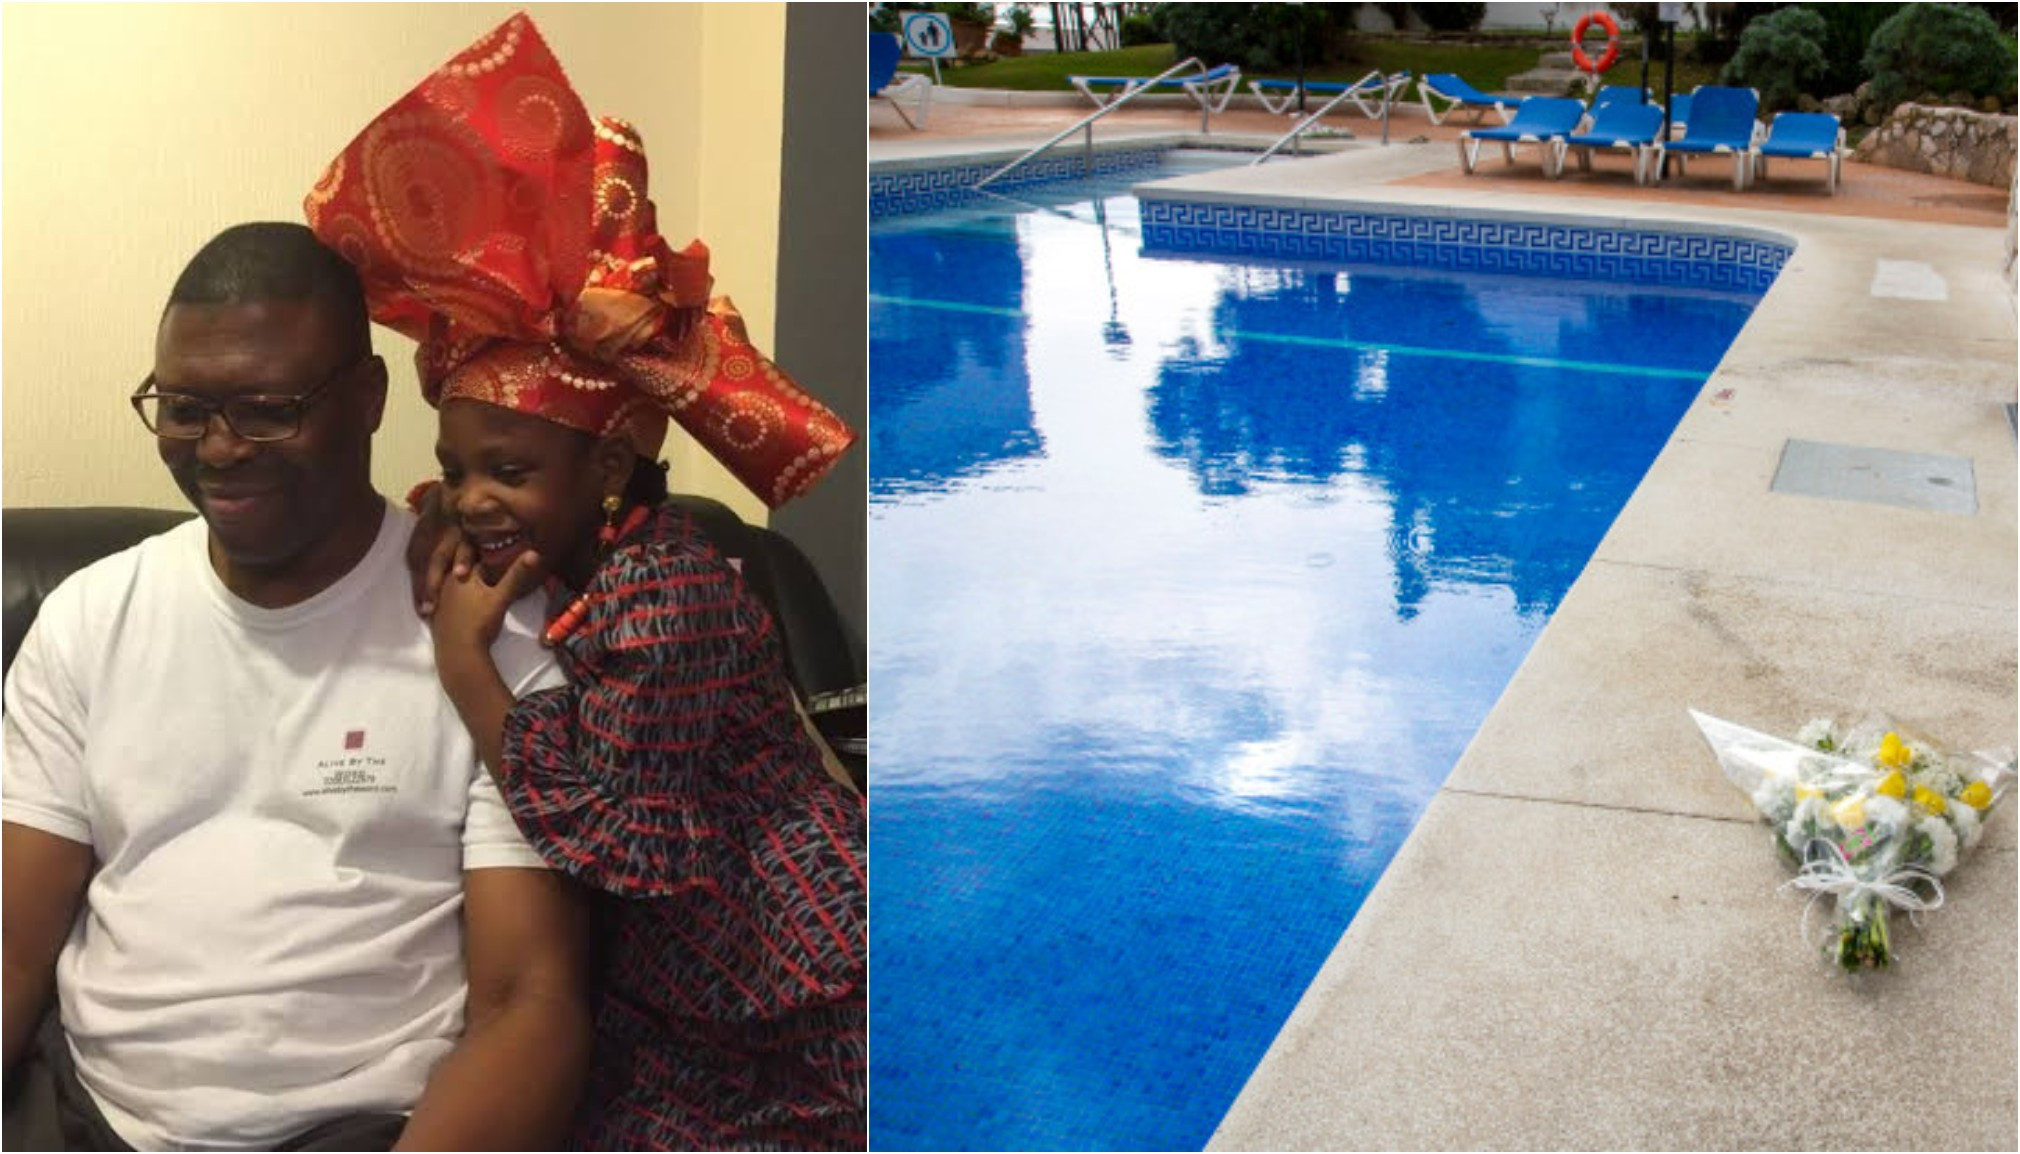 RCCG pastor and two kids drowned in a pool.